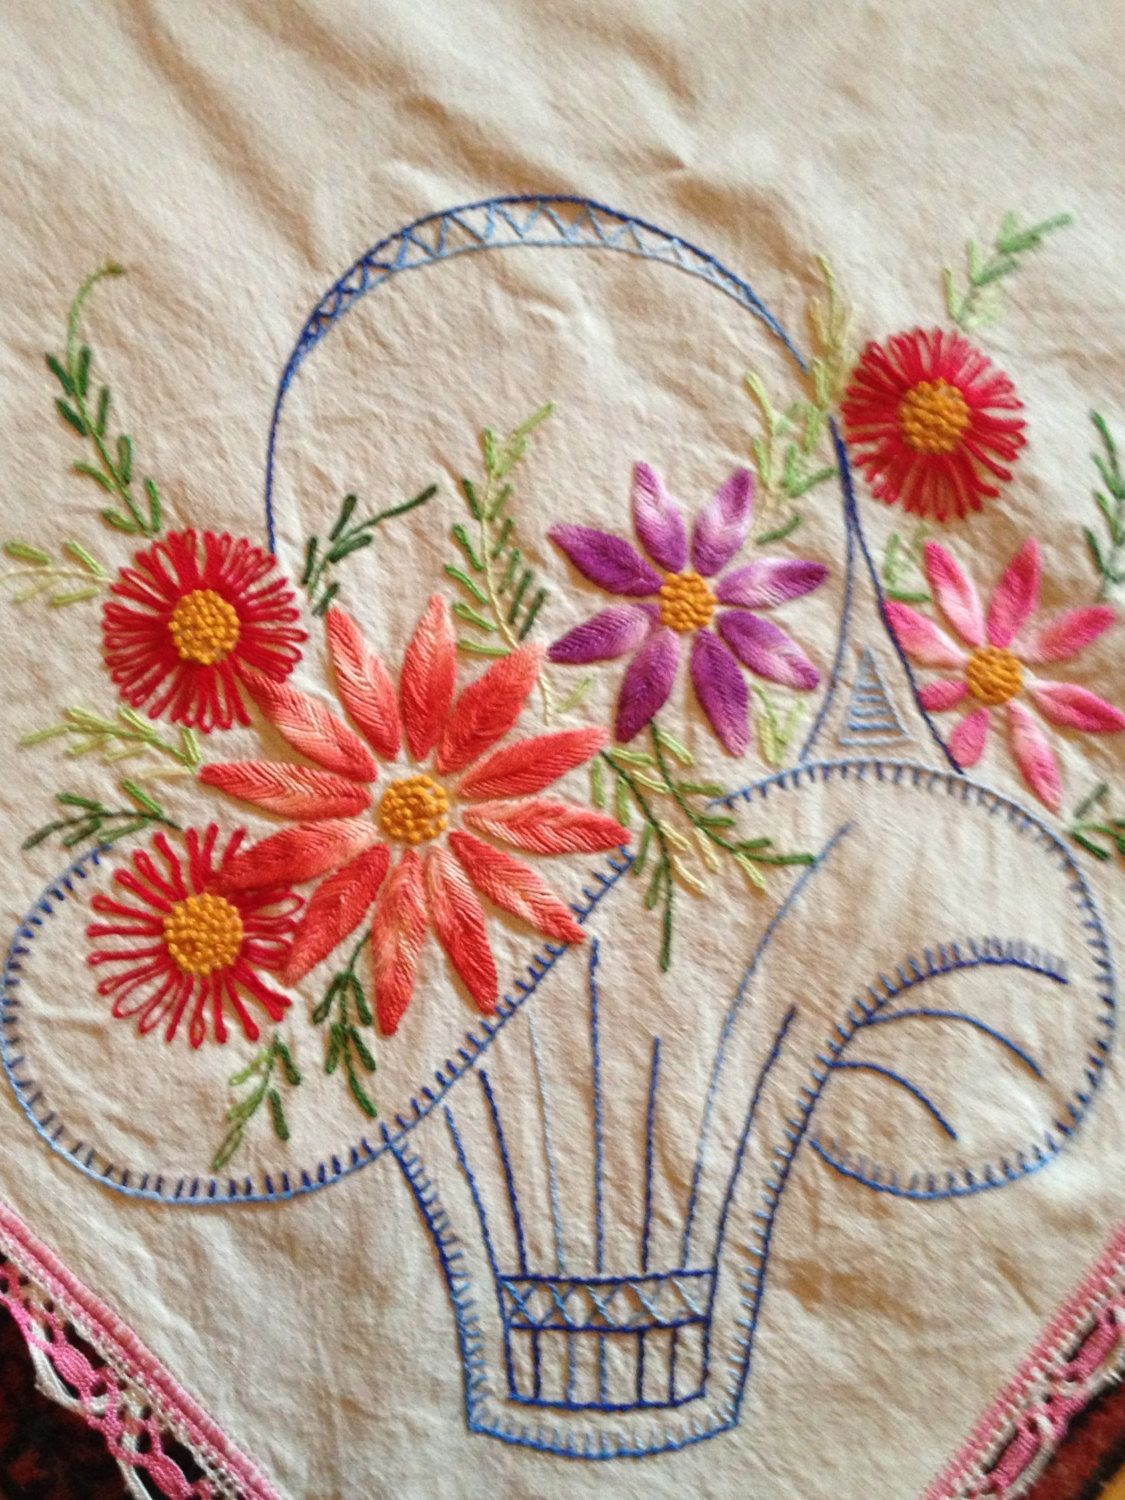 Outline embroidery designs for tablecloth - Hand Embroidered Vintage Tablecloth Basket Of Flowers Off White Linen 18 00 Via Etsy